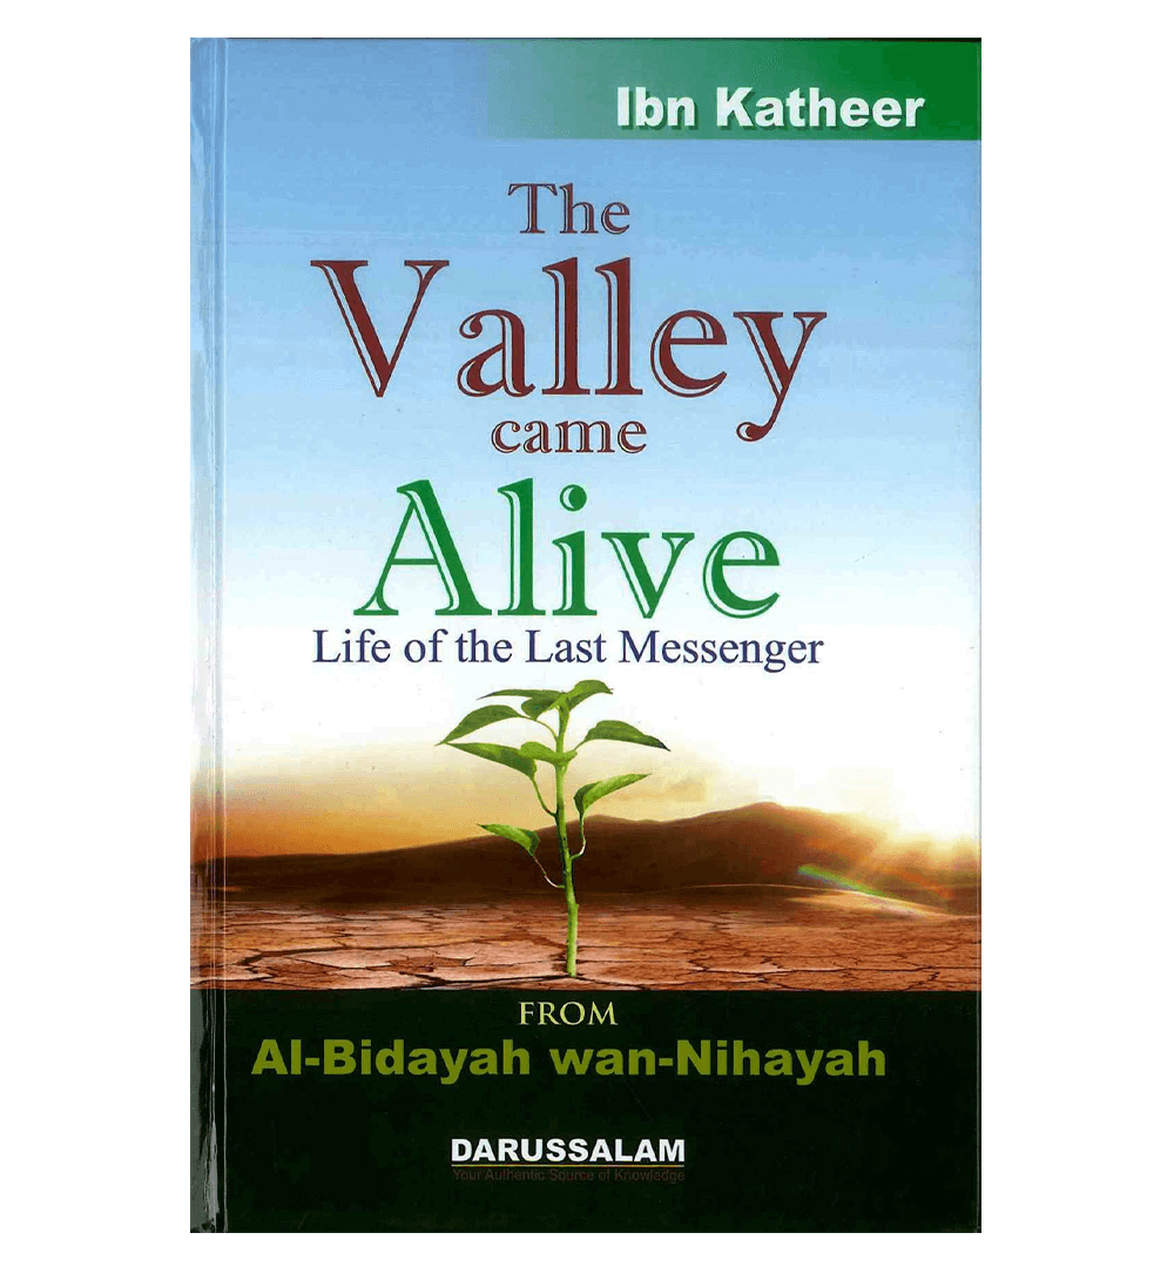 The valley came alive - Life of the last Messenger